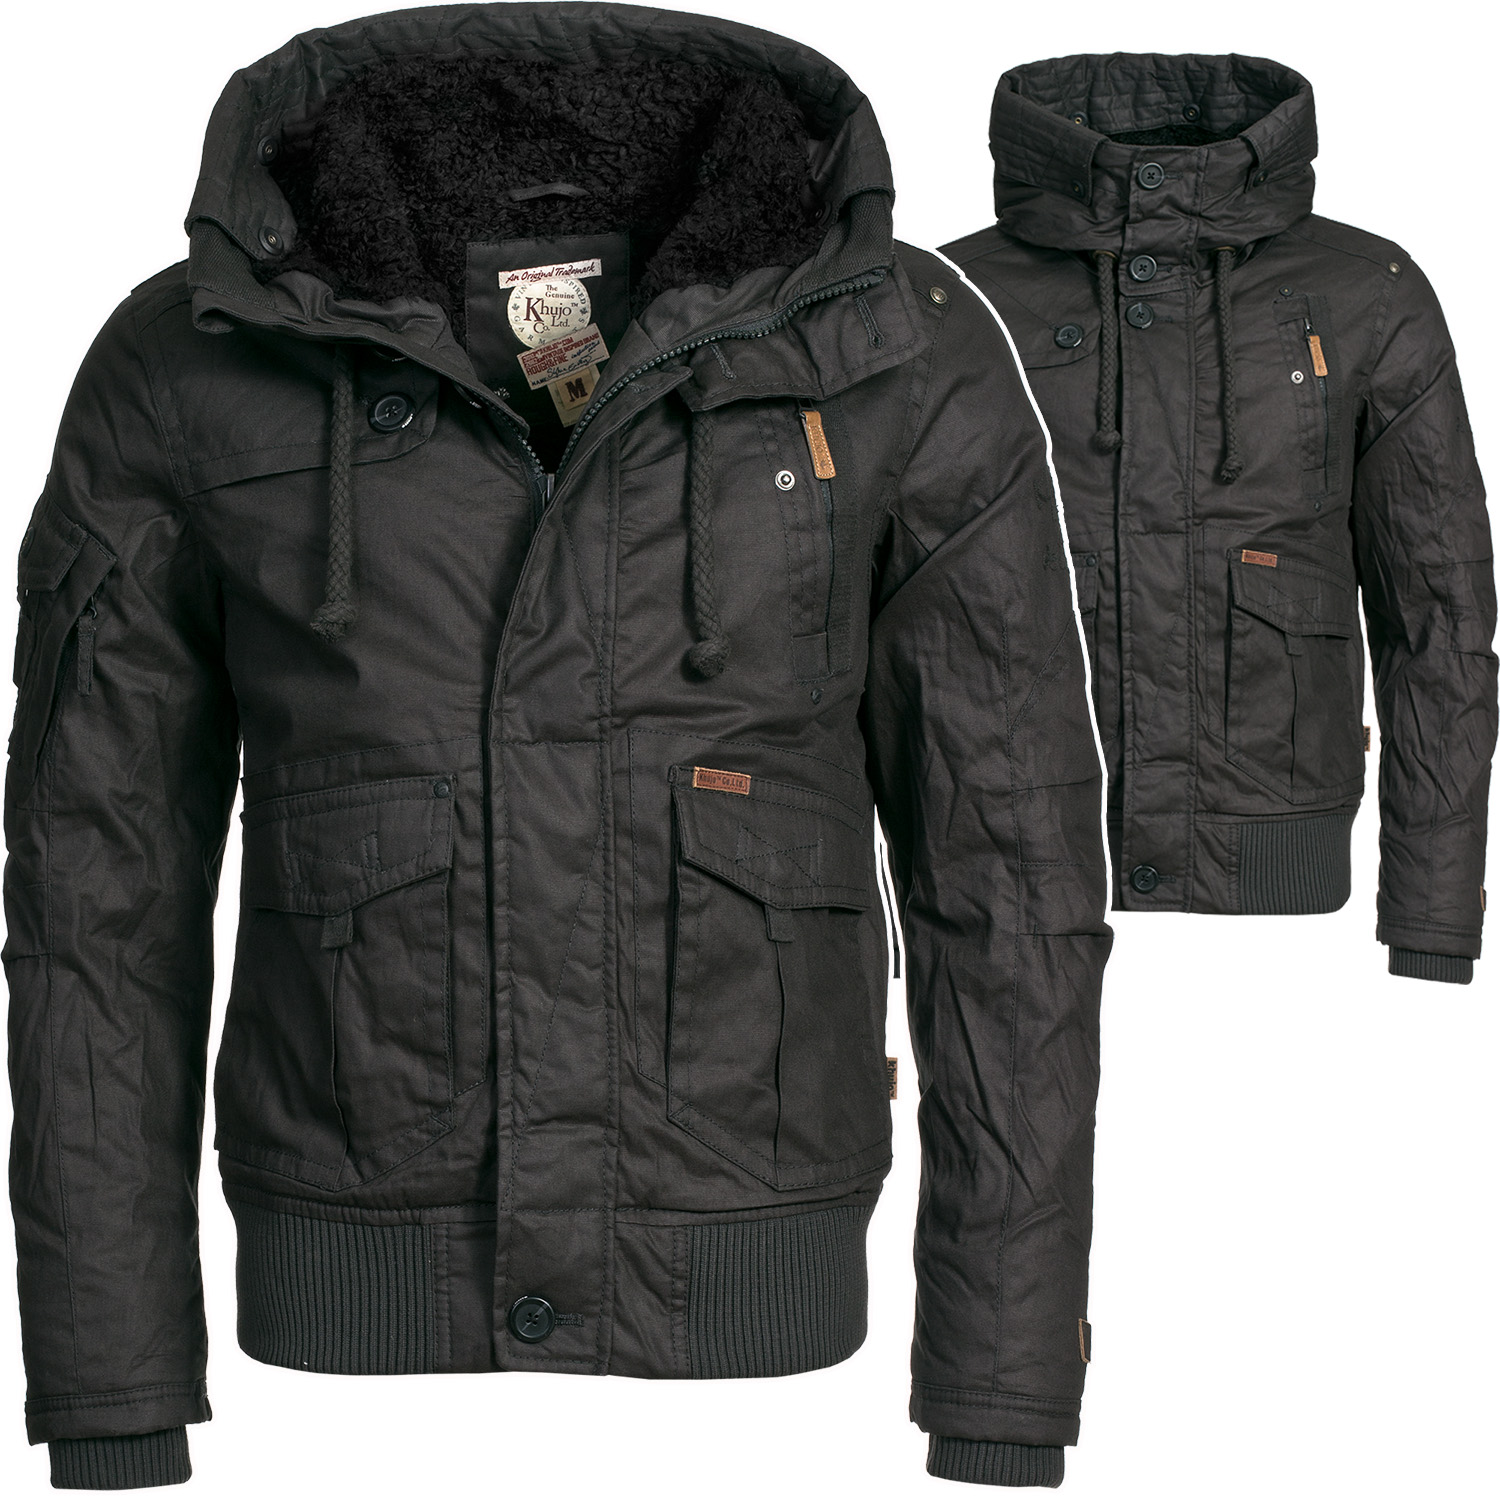 khujo zeus herren winterjacke wintermantel winter parka jacke mantel dunkel grau ebay. Black Bedroom Furniture Sets. Home Design Ideas